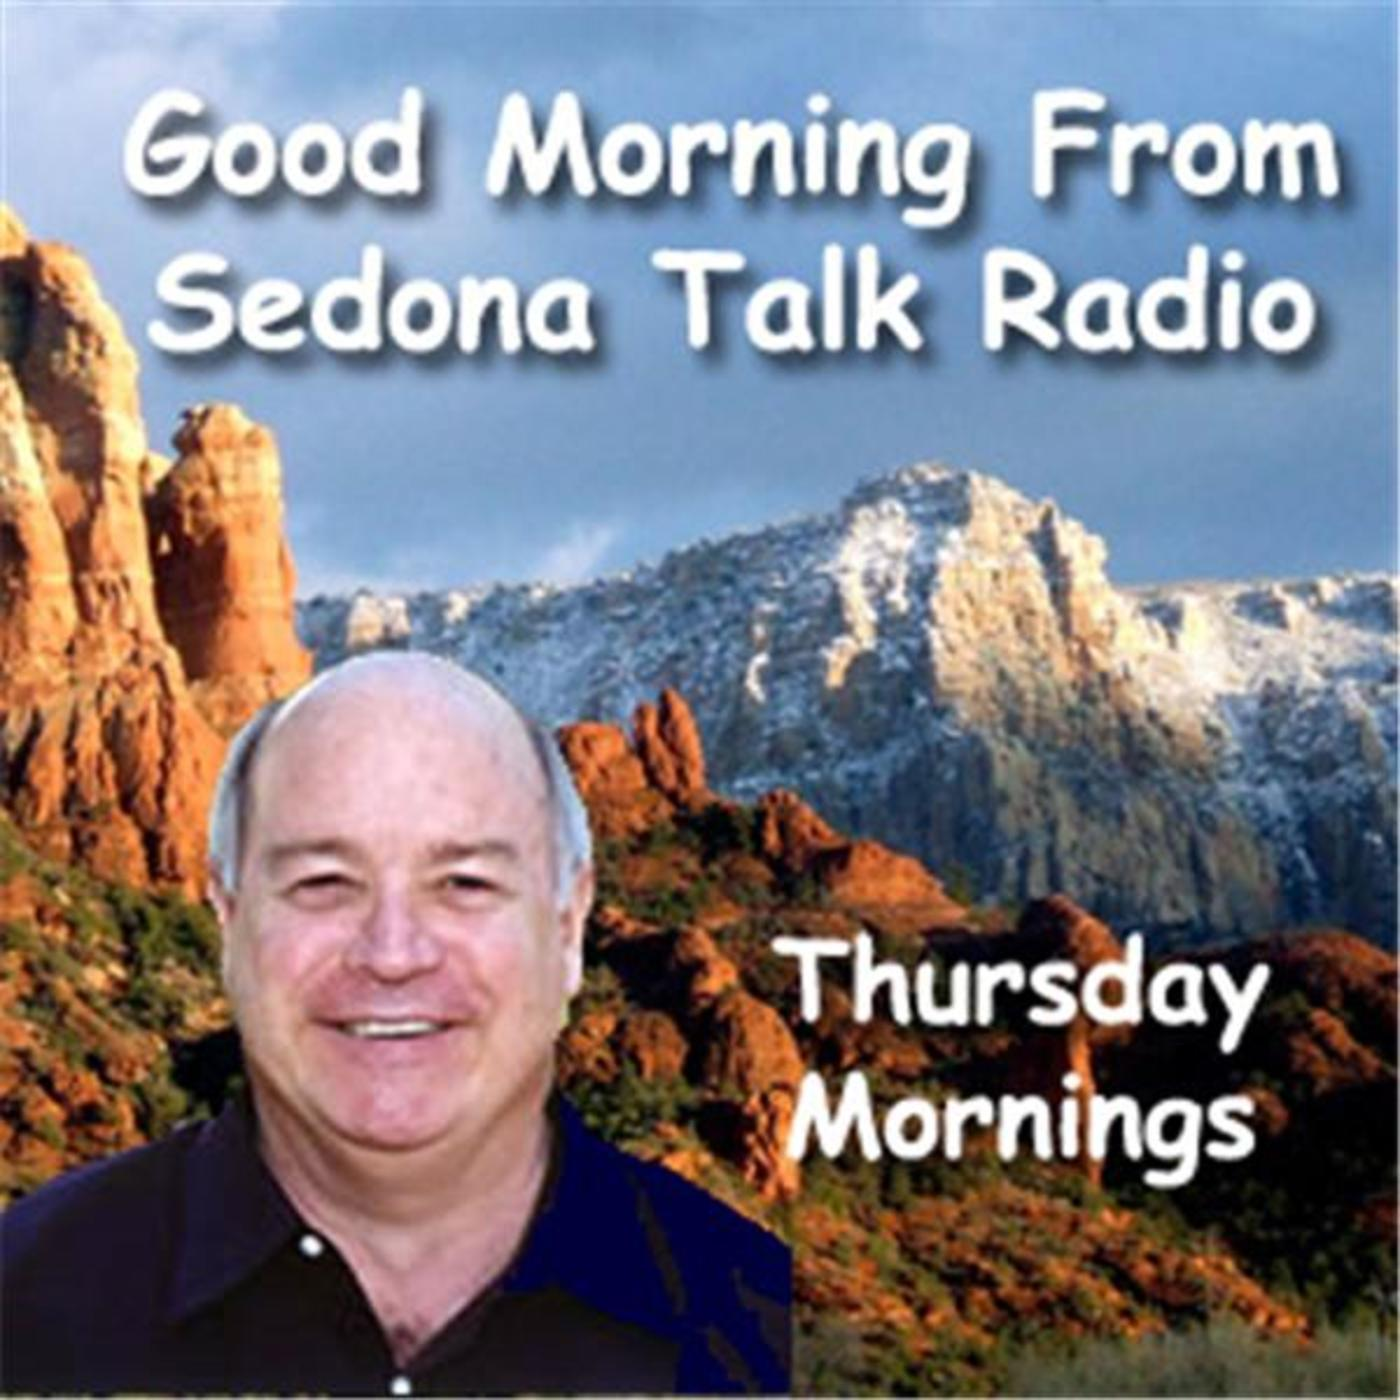 Good Morning from Sedona Talk Radio